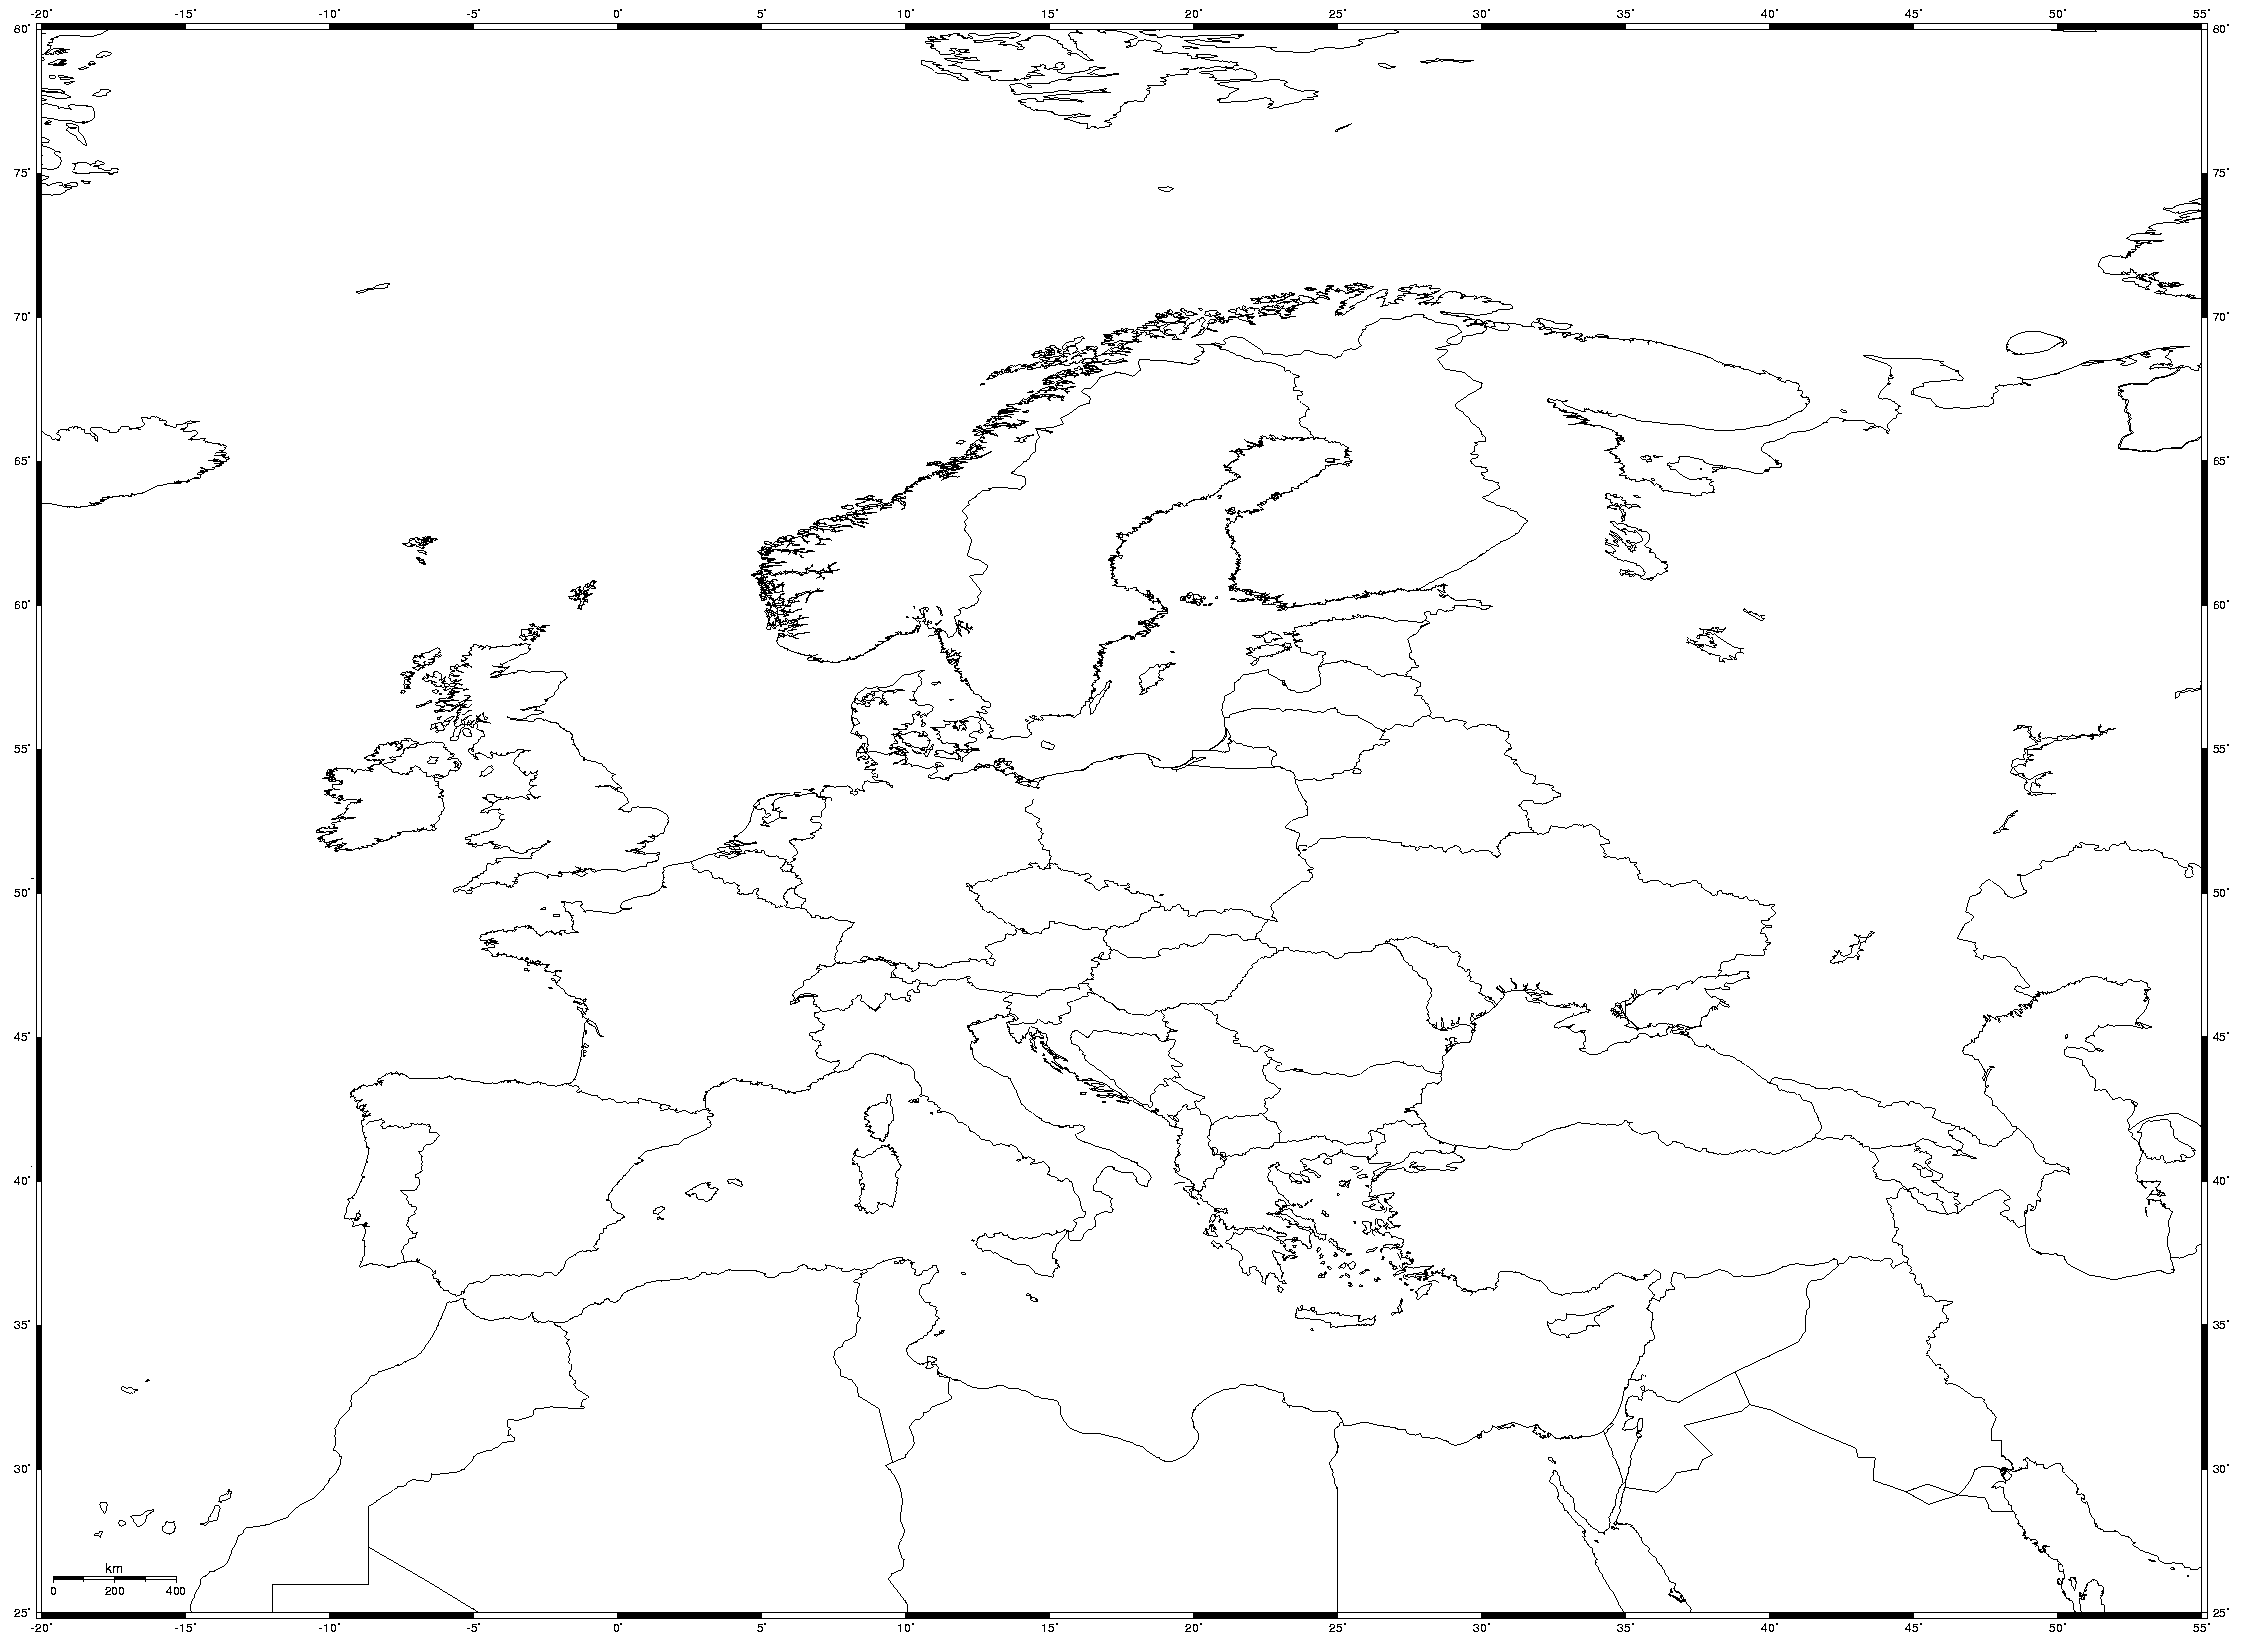 Equidistant Cylindrical Blank Map of Europe